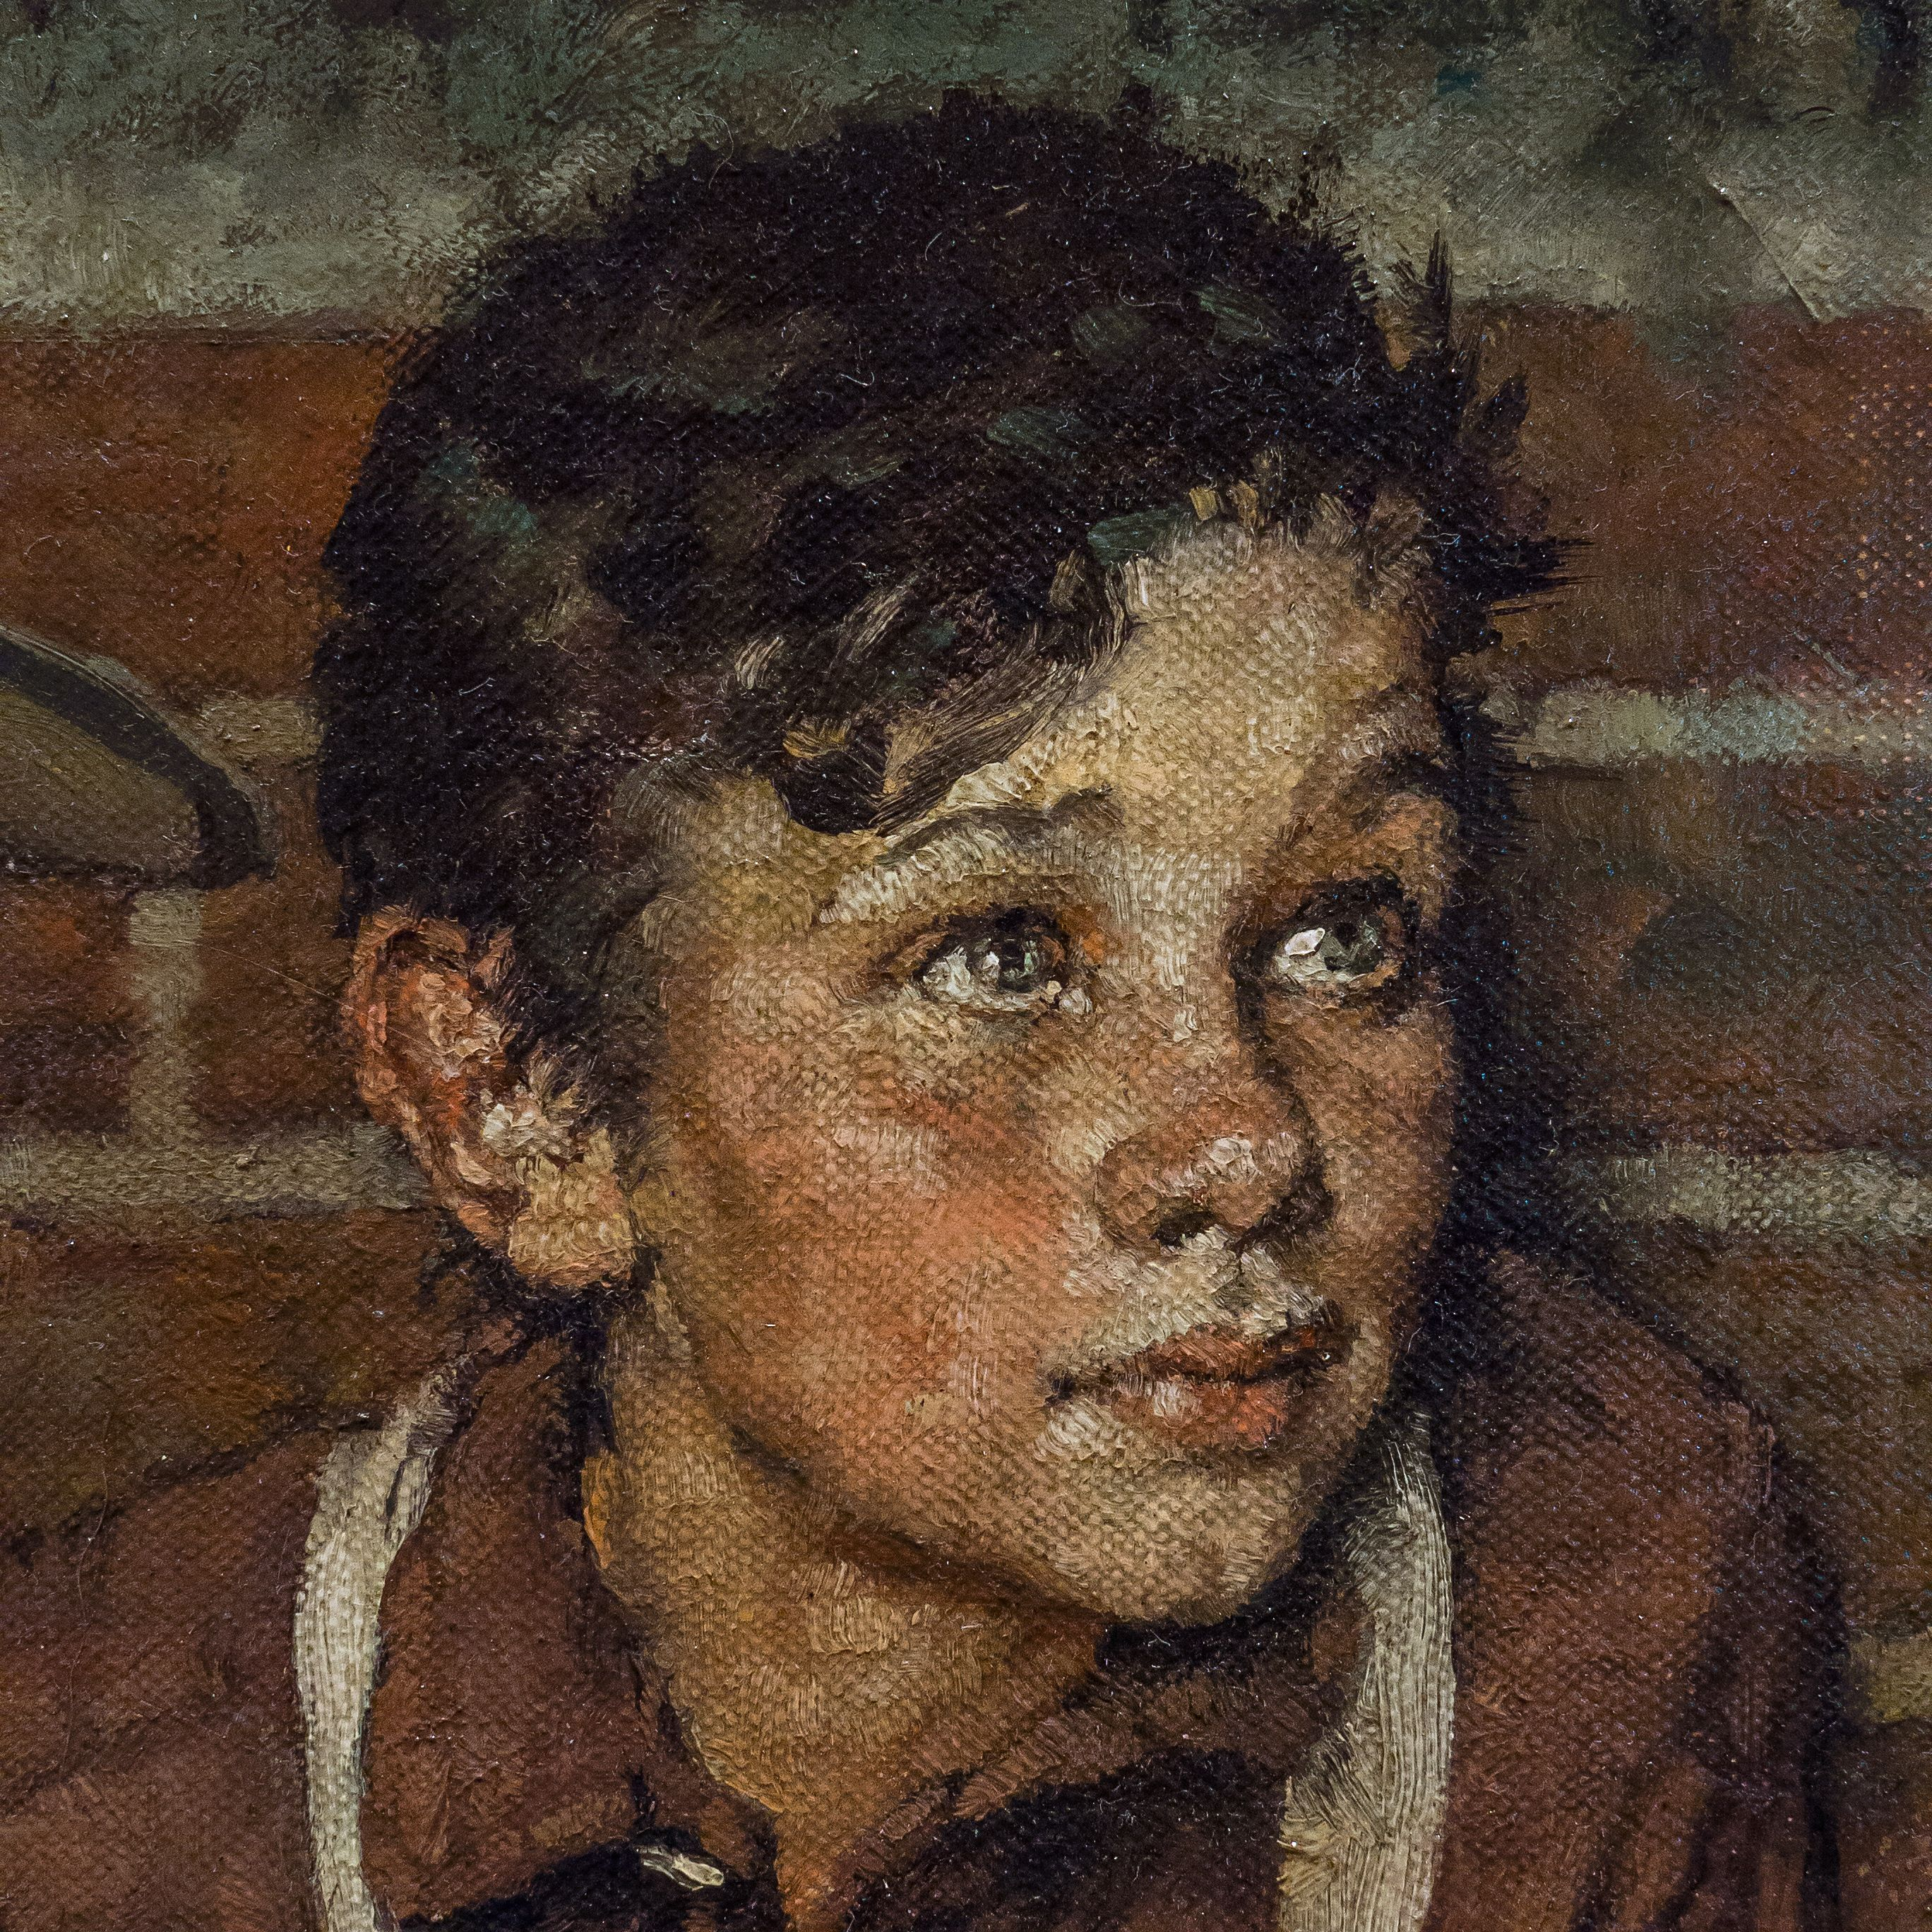 Blacksmith S Boy Heel And Toe By Norman Rockwell 1940